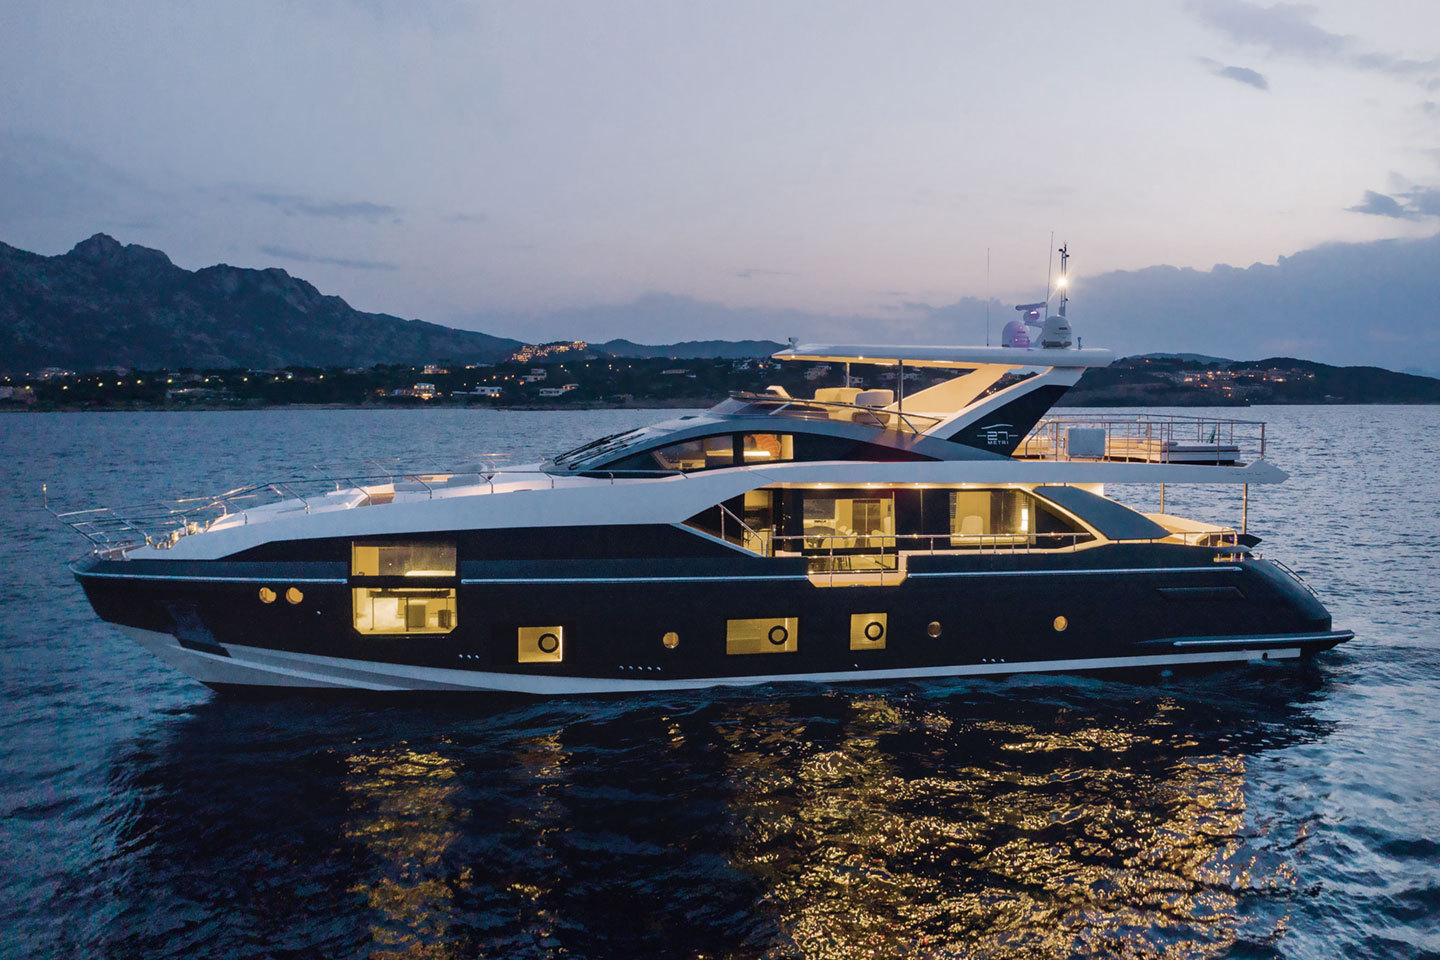 Best yacht brands: the most expensive yacht brands from America's cup